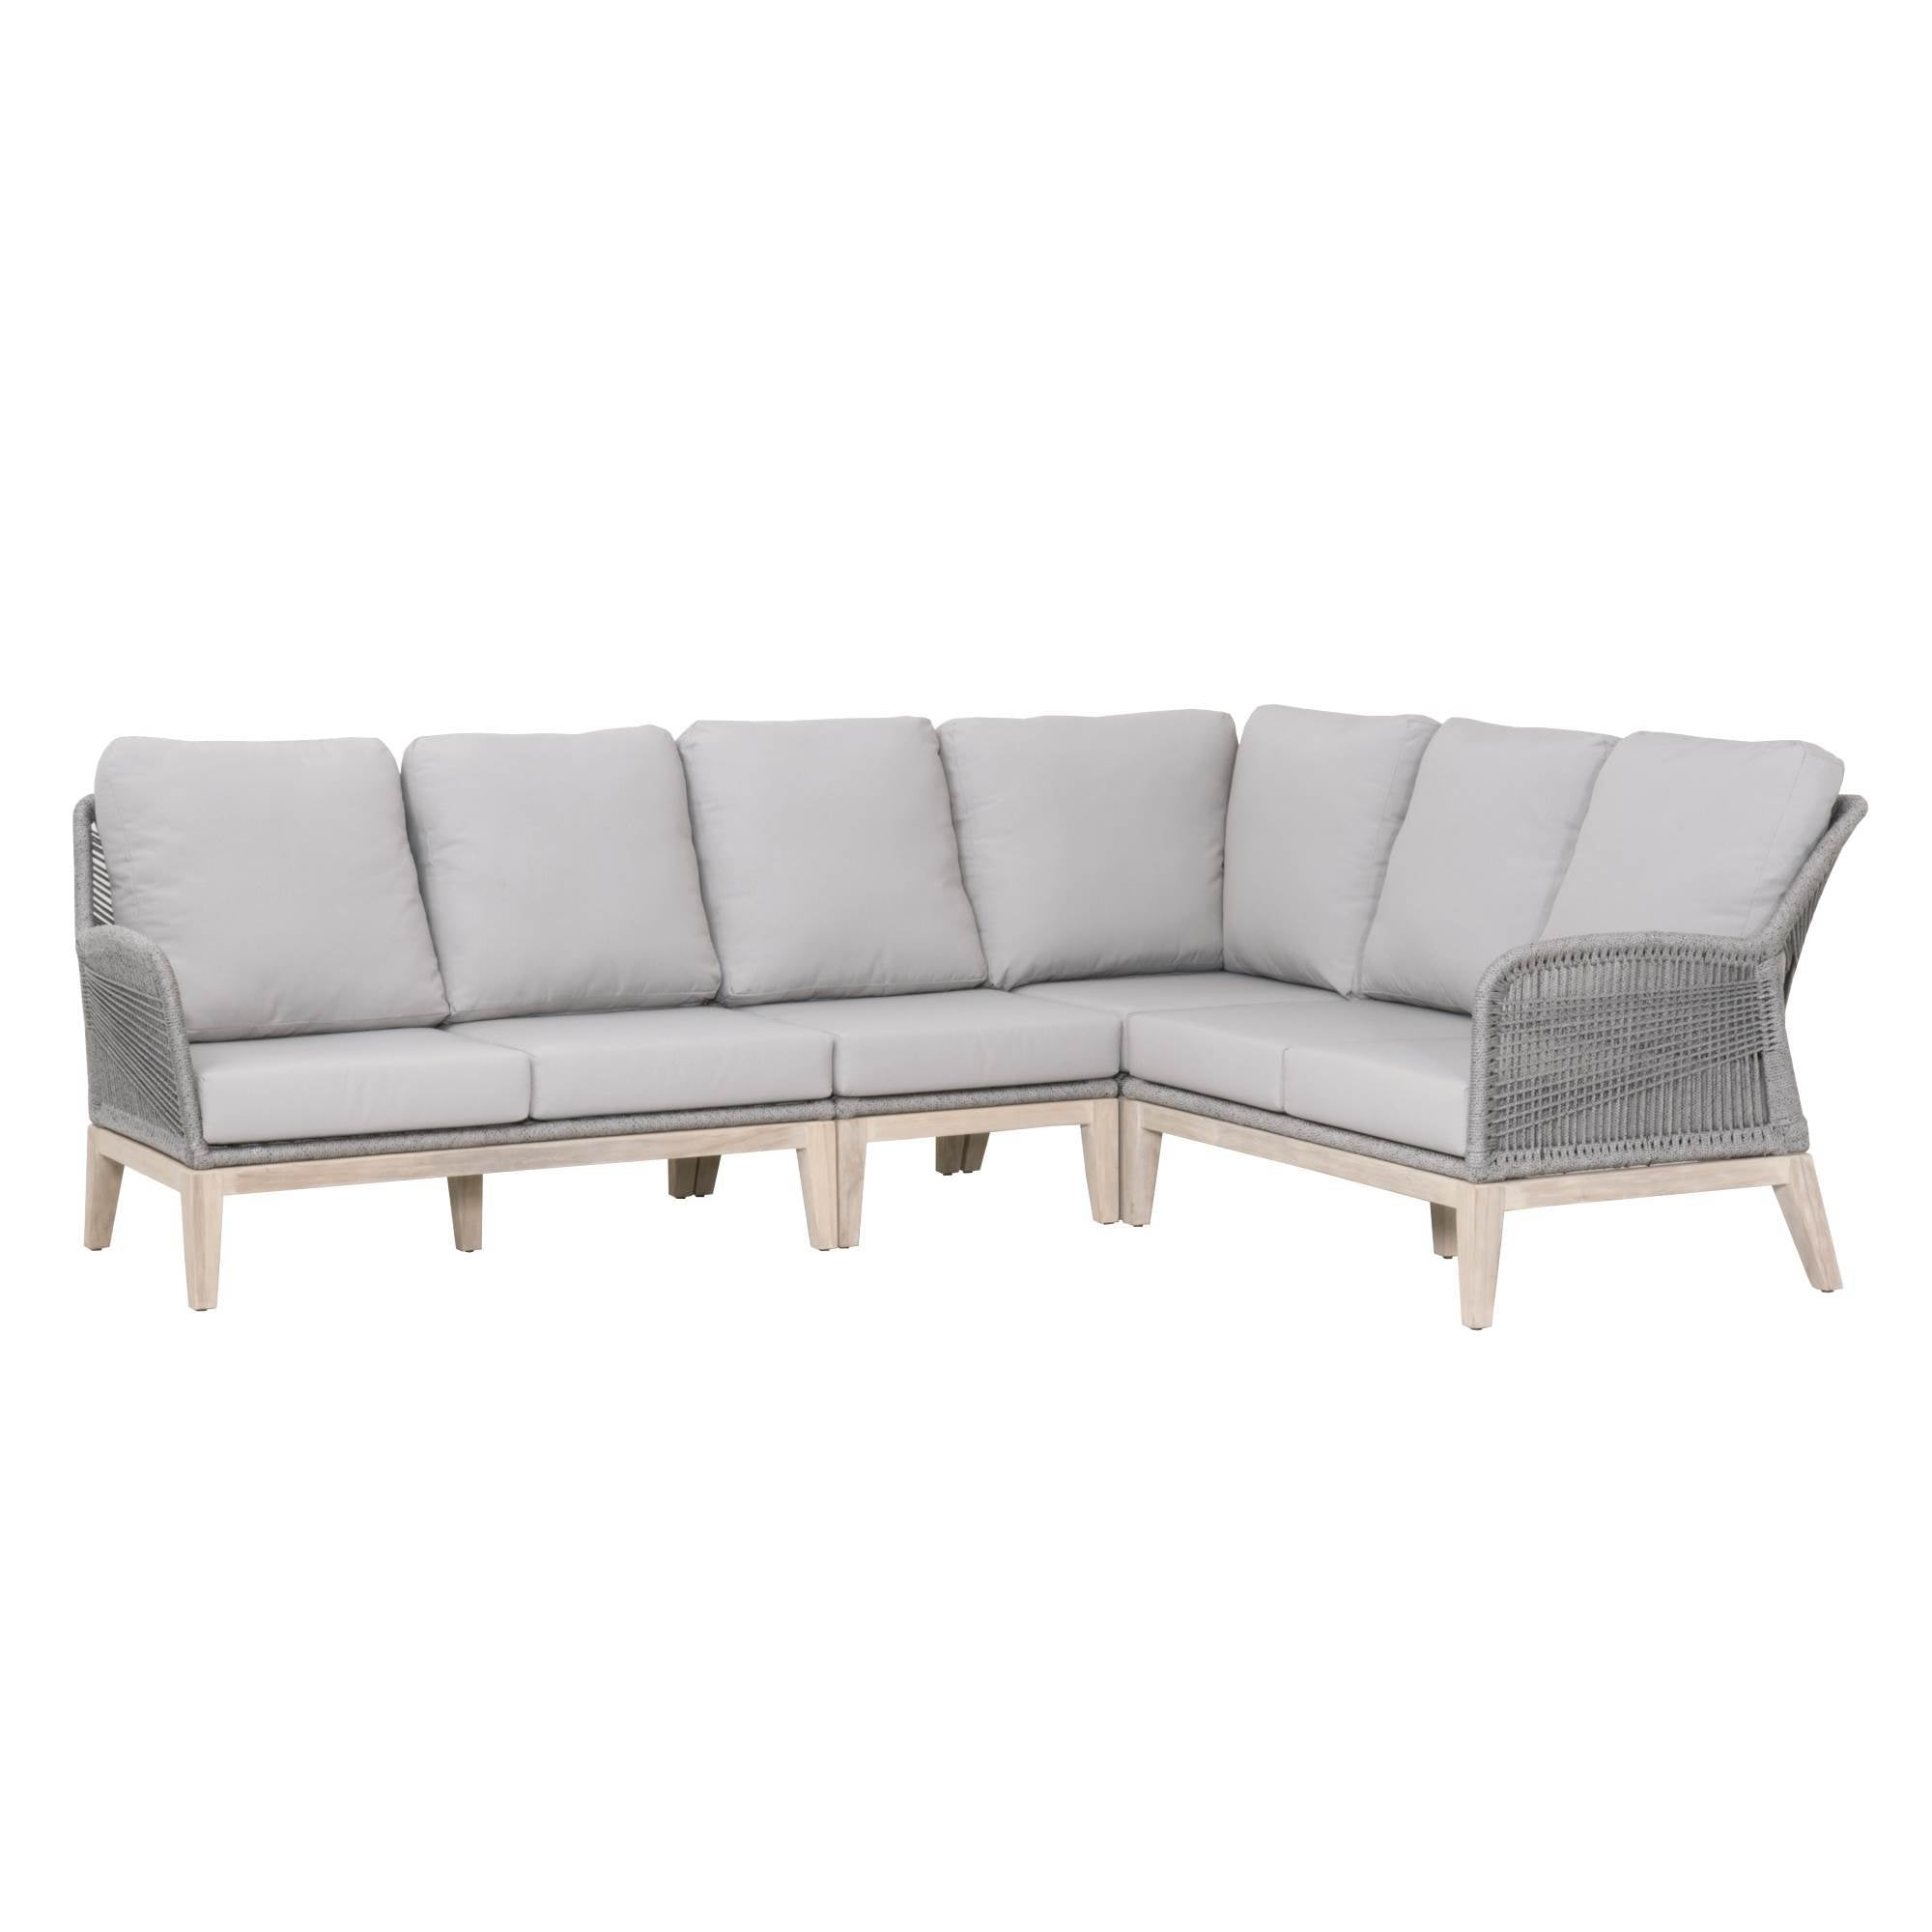 Loom Outdoor Modular LF 2-Seat Sofa in Platinum Rope